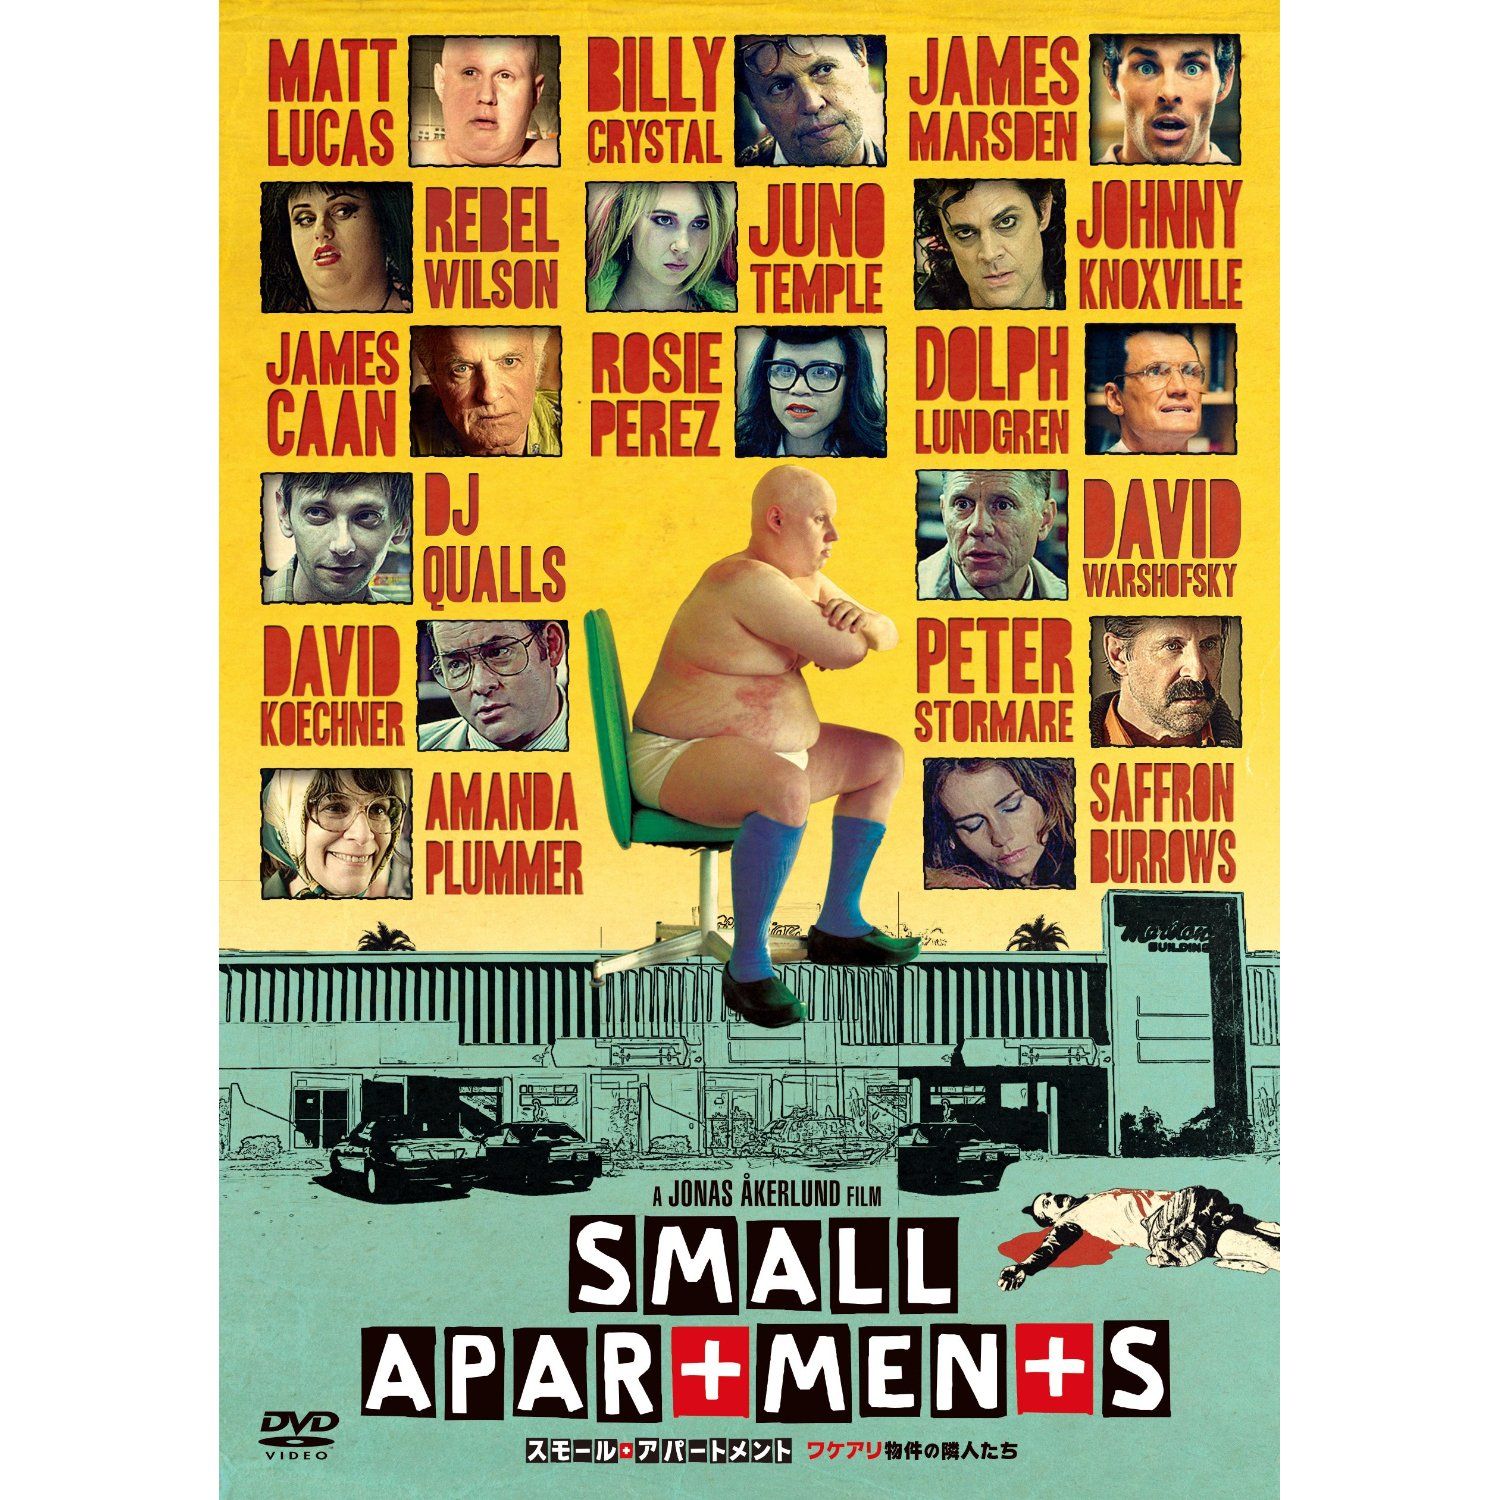 The Apartment Movie: When Books Become Movies: Small Apartments